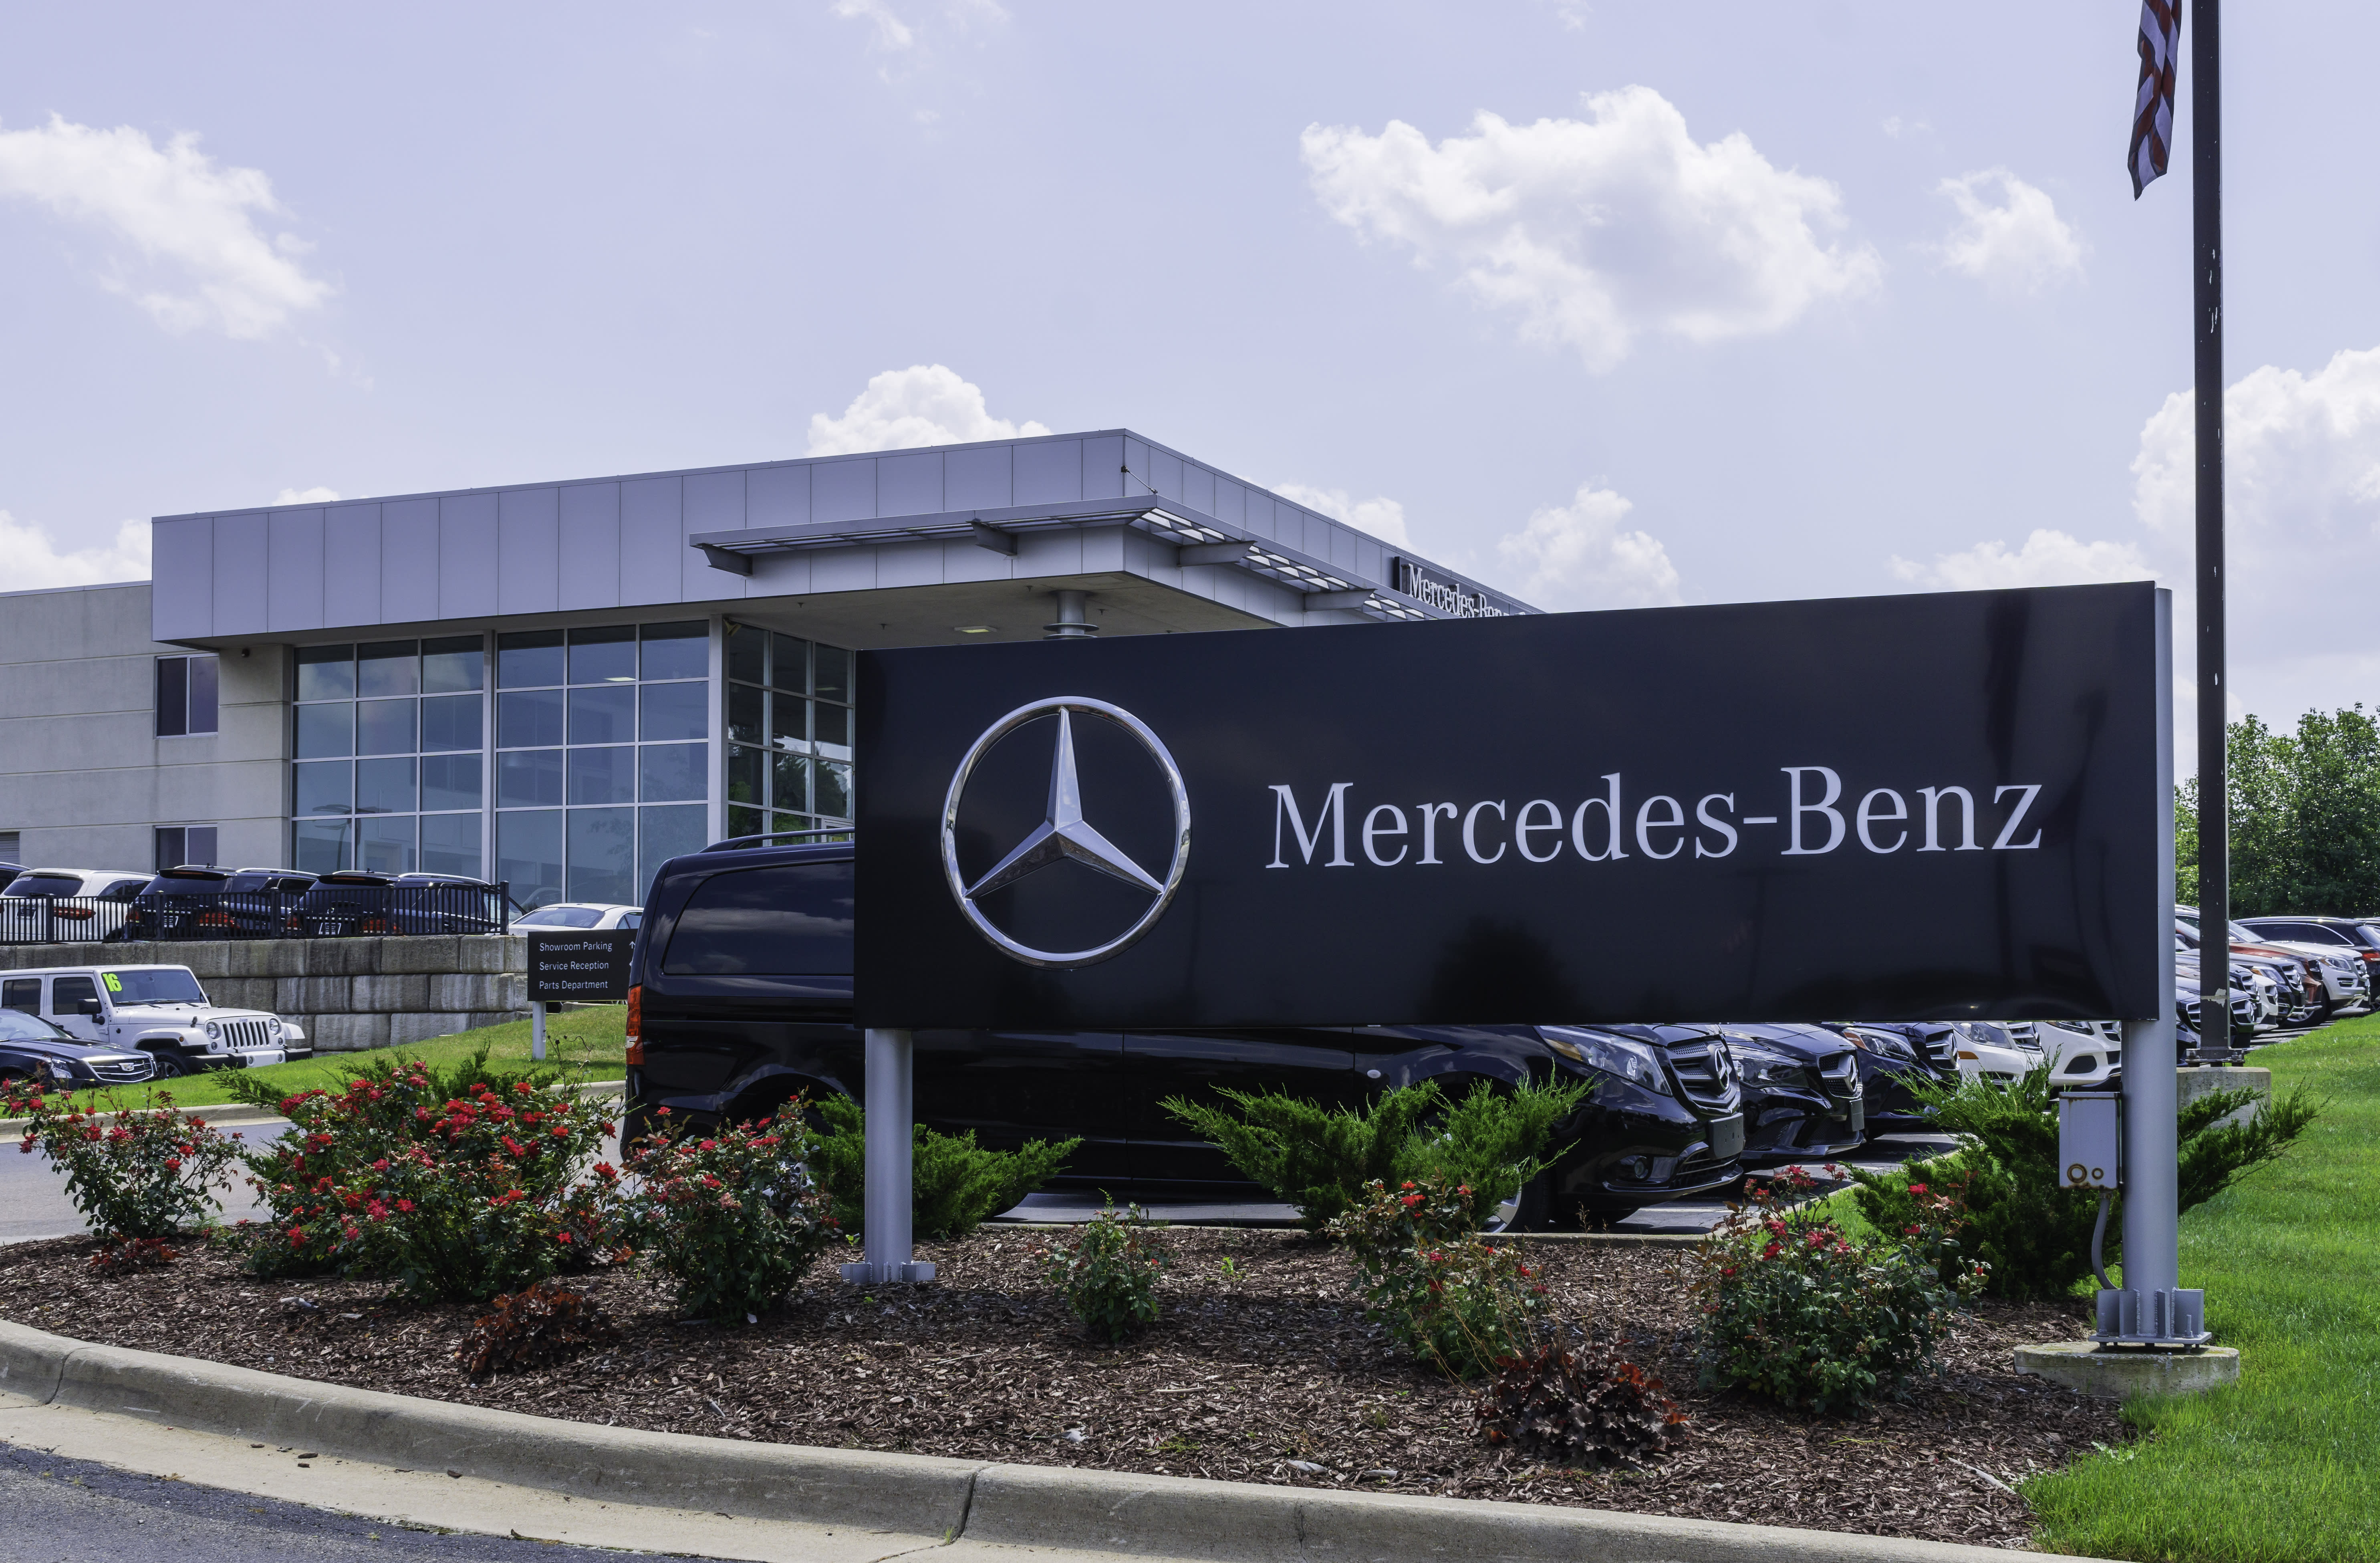 Mercedes-Benz punished for life-threatening decision